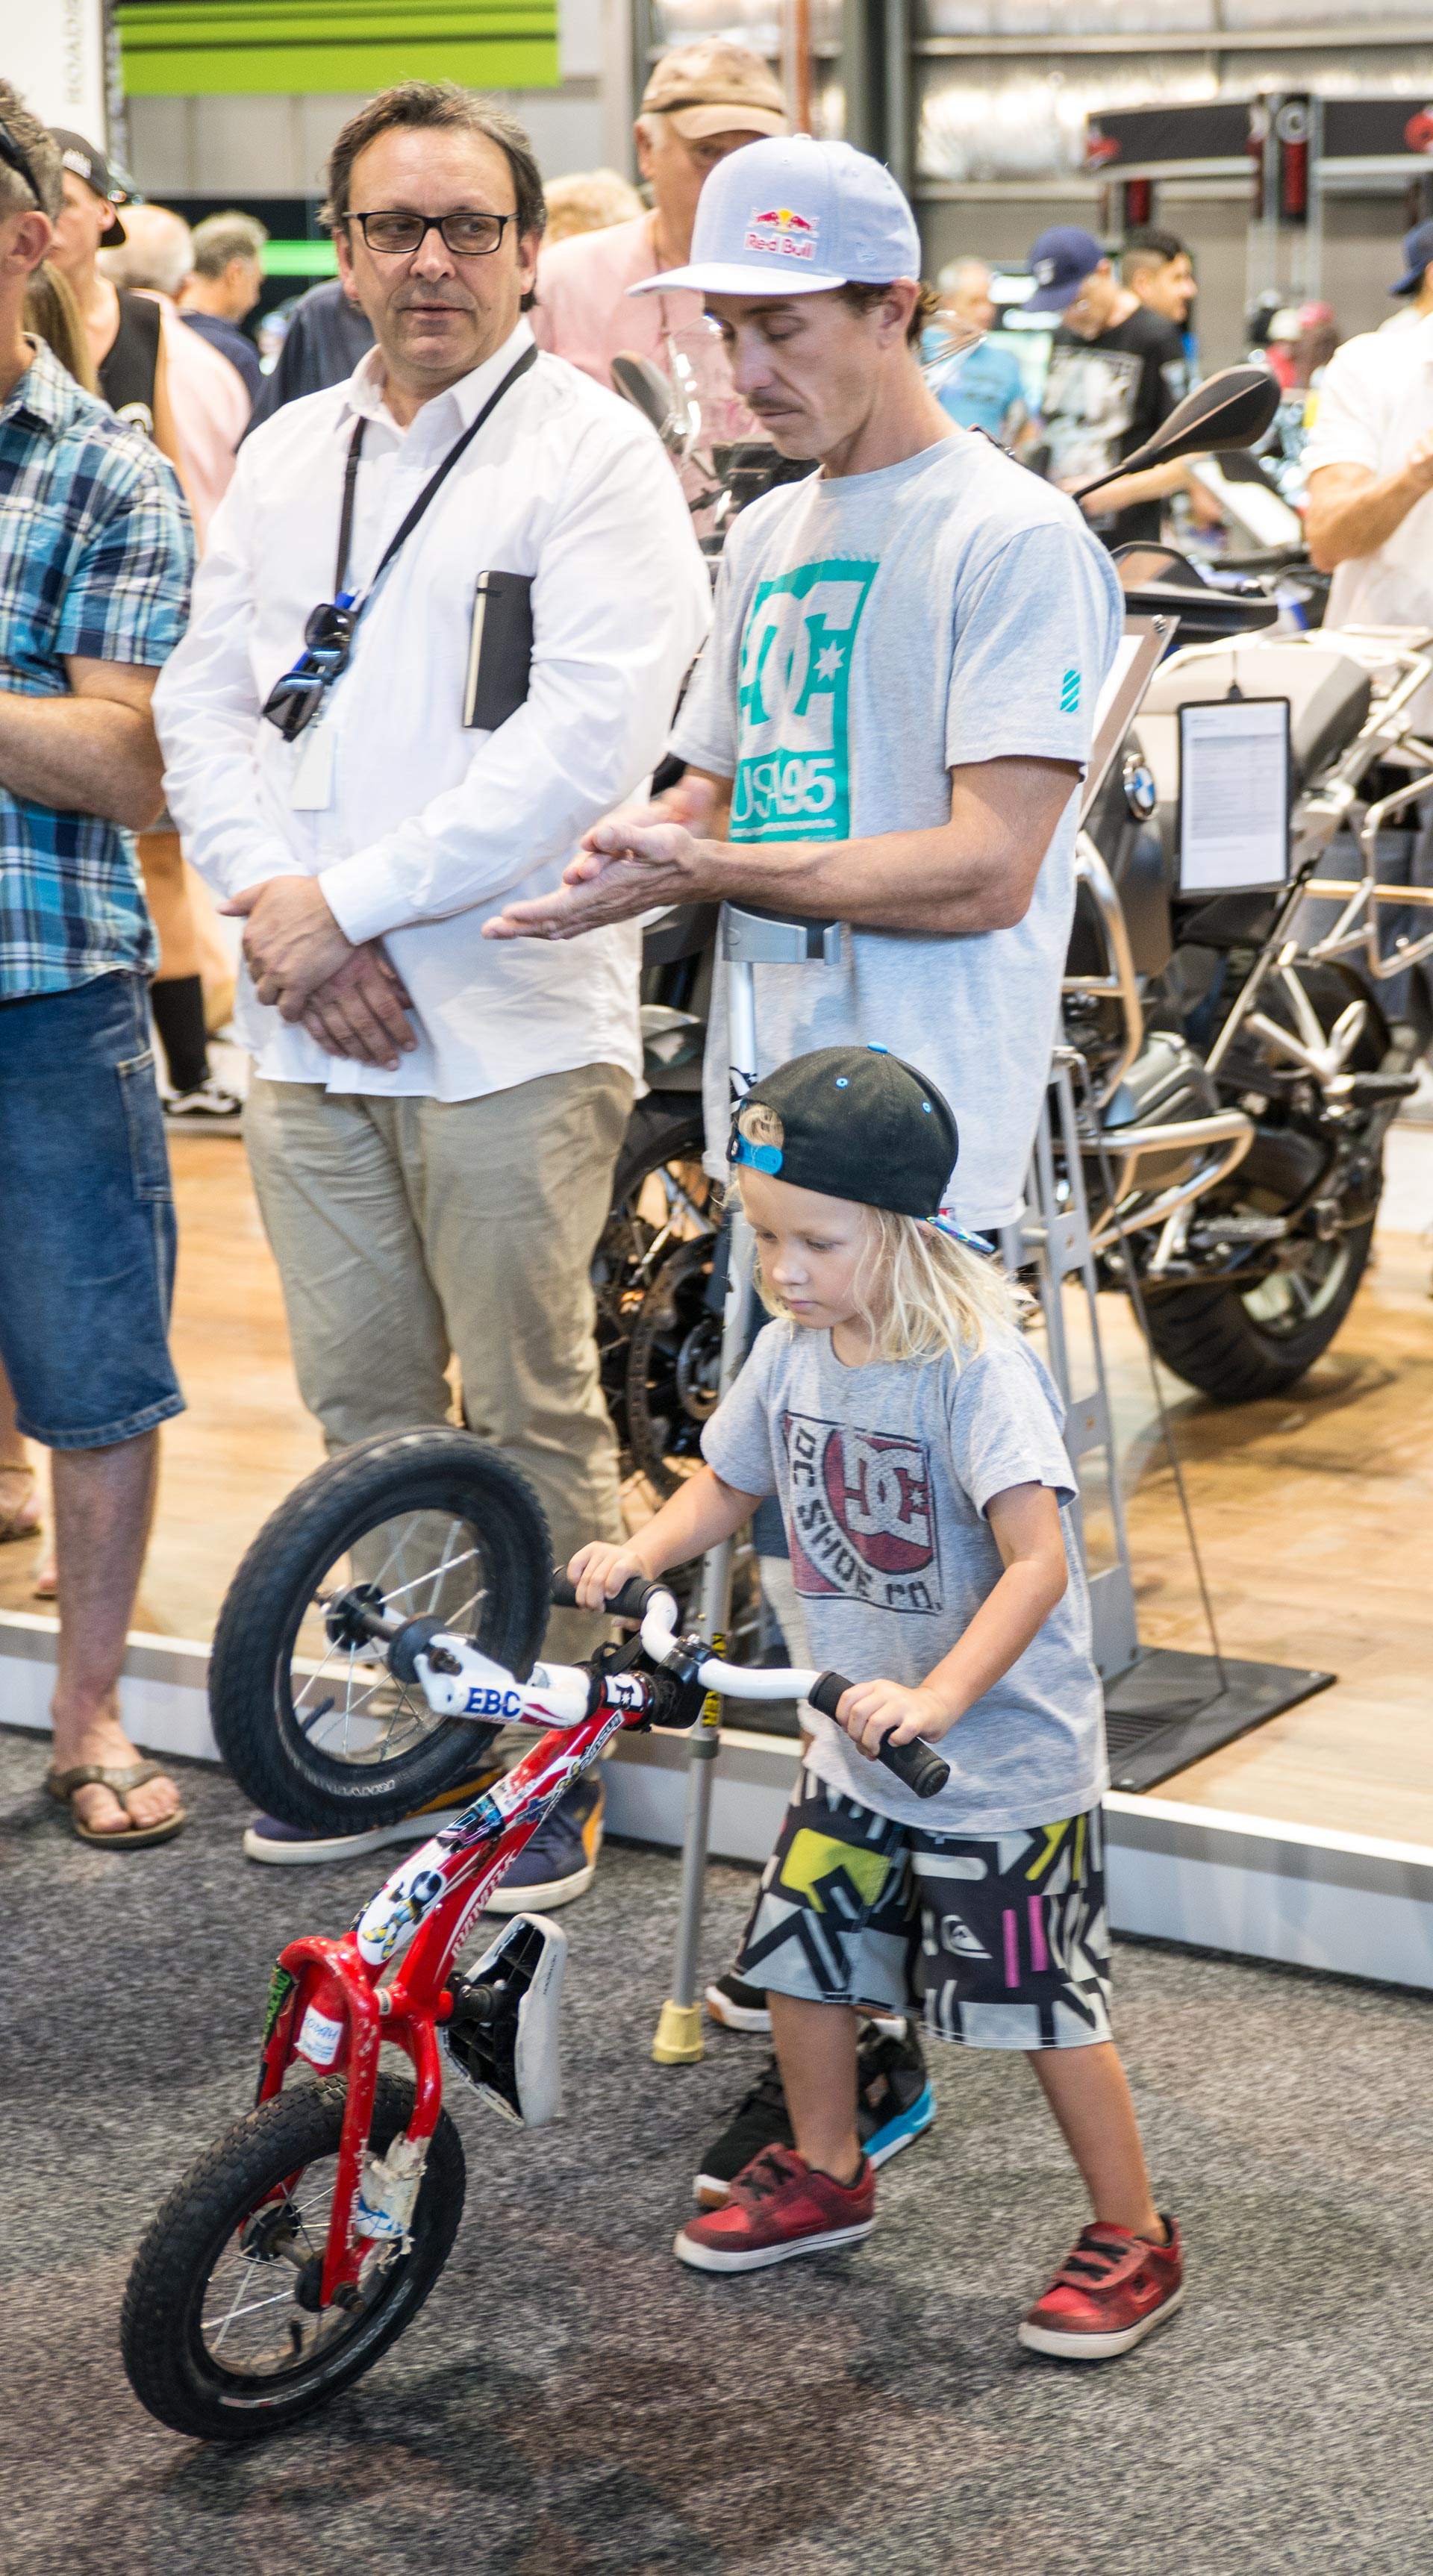 Sydney motorcycle show 2015 images d for Pool show 2015 sydney